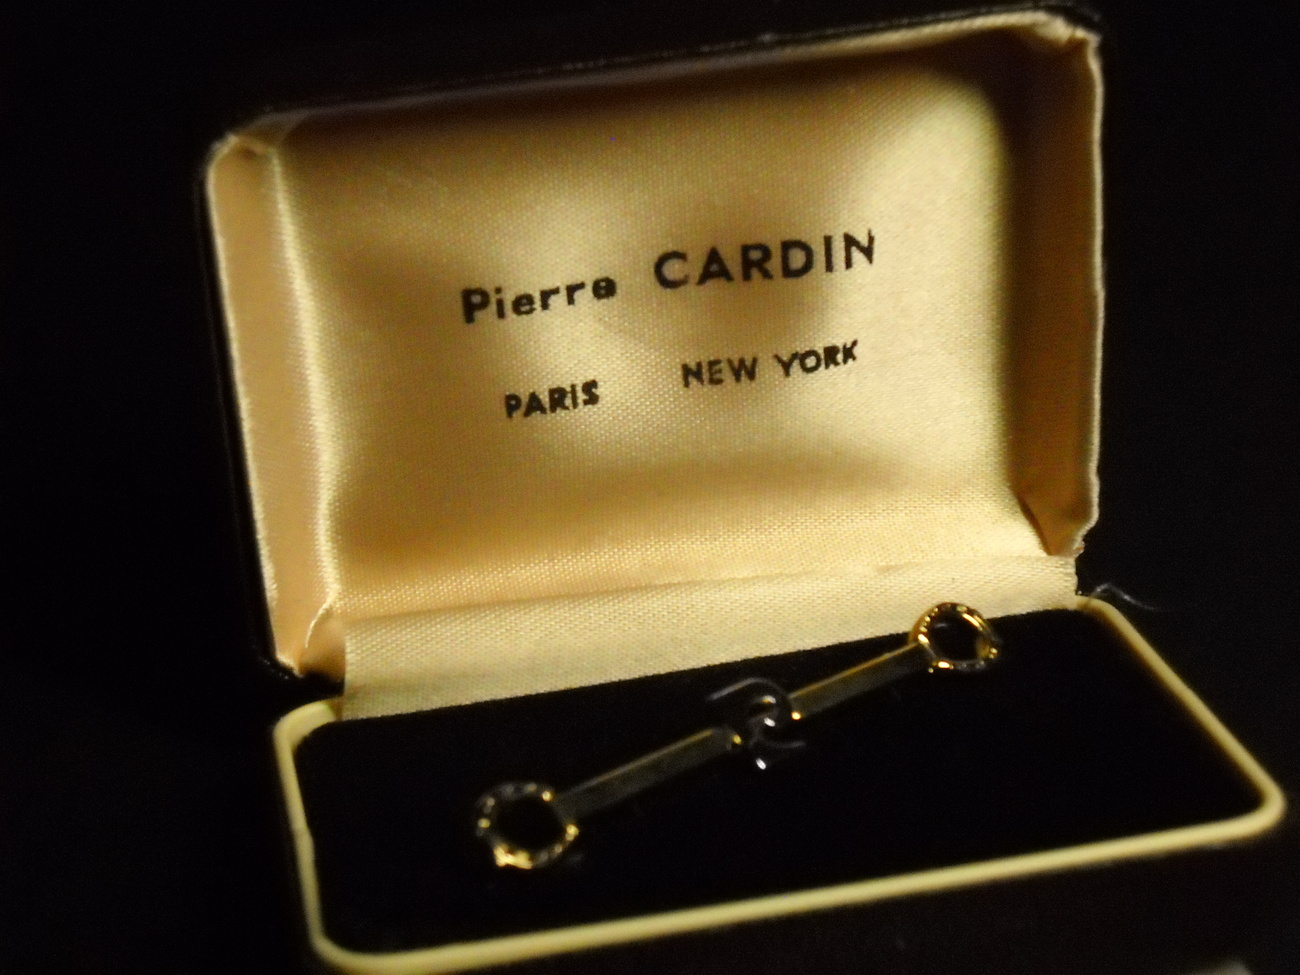 Pierre Cardin Horseshoe Pin Gold Color Metal in Original Brown Presentation Box